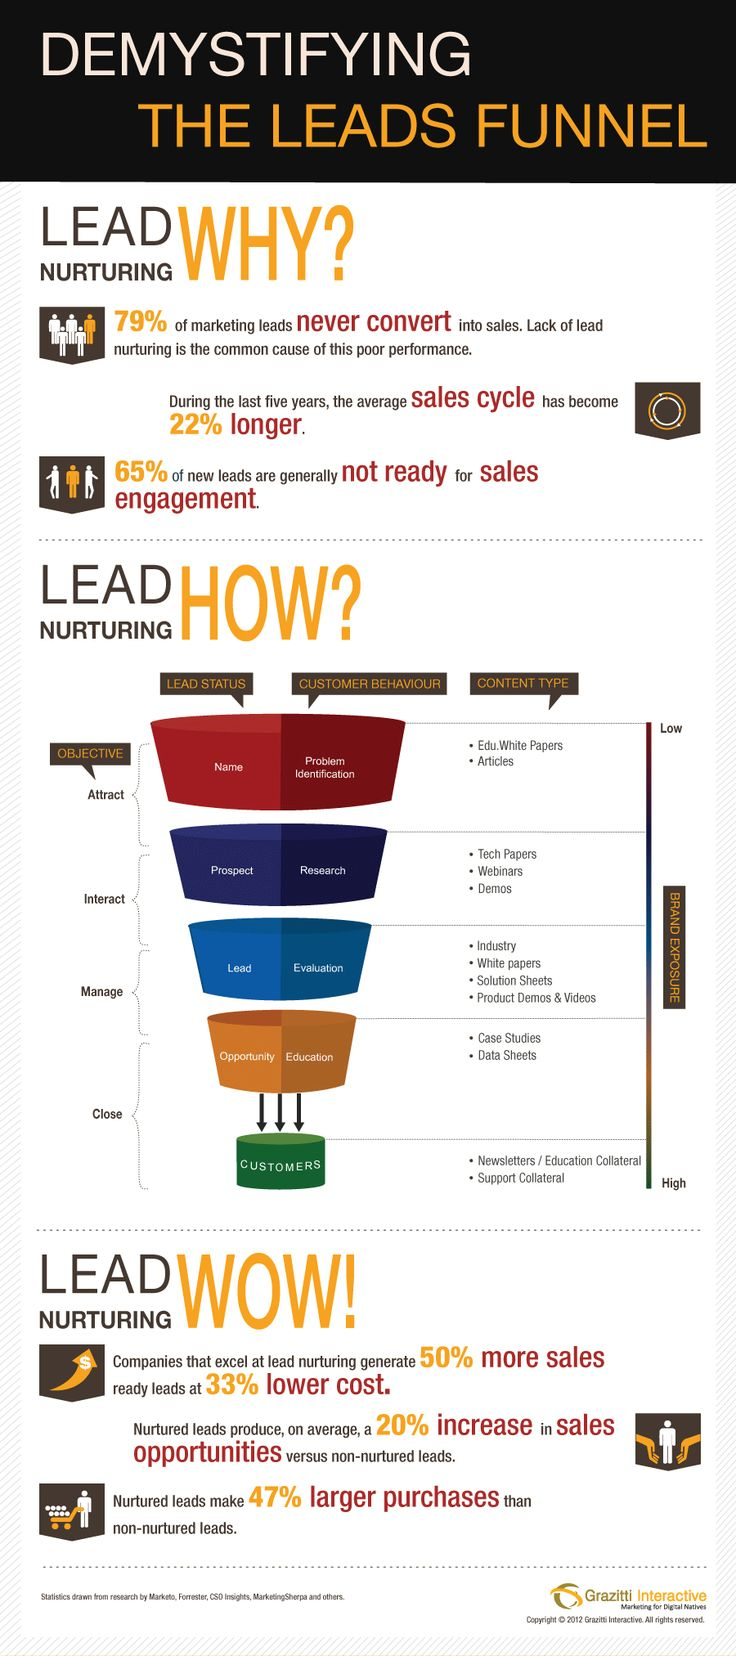 Demystifying the leads funnel [Infographic]